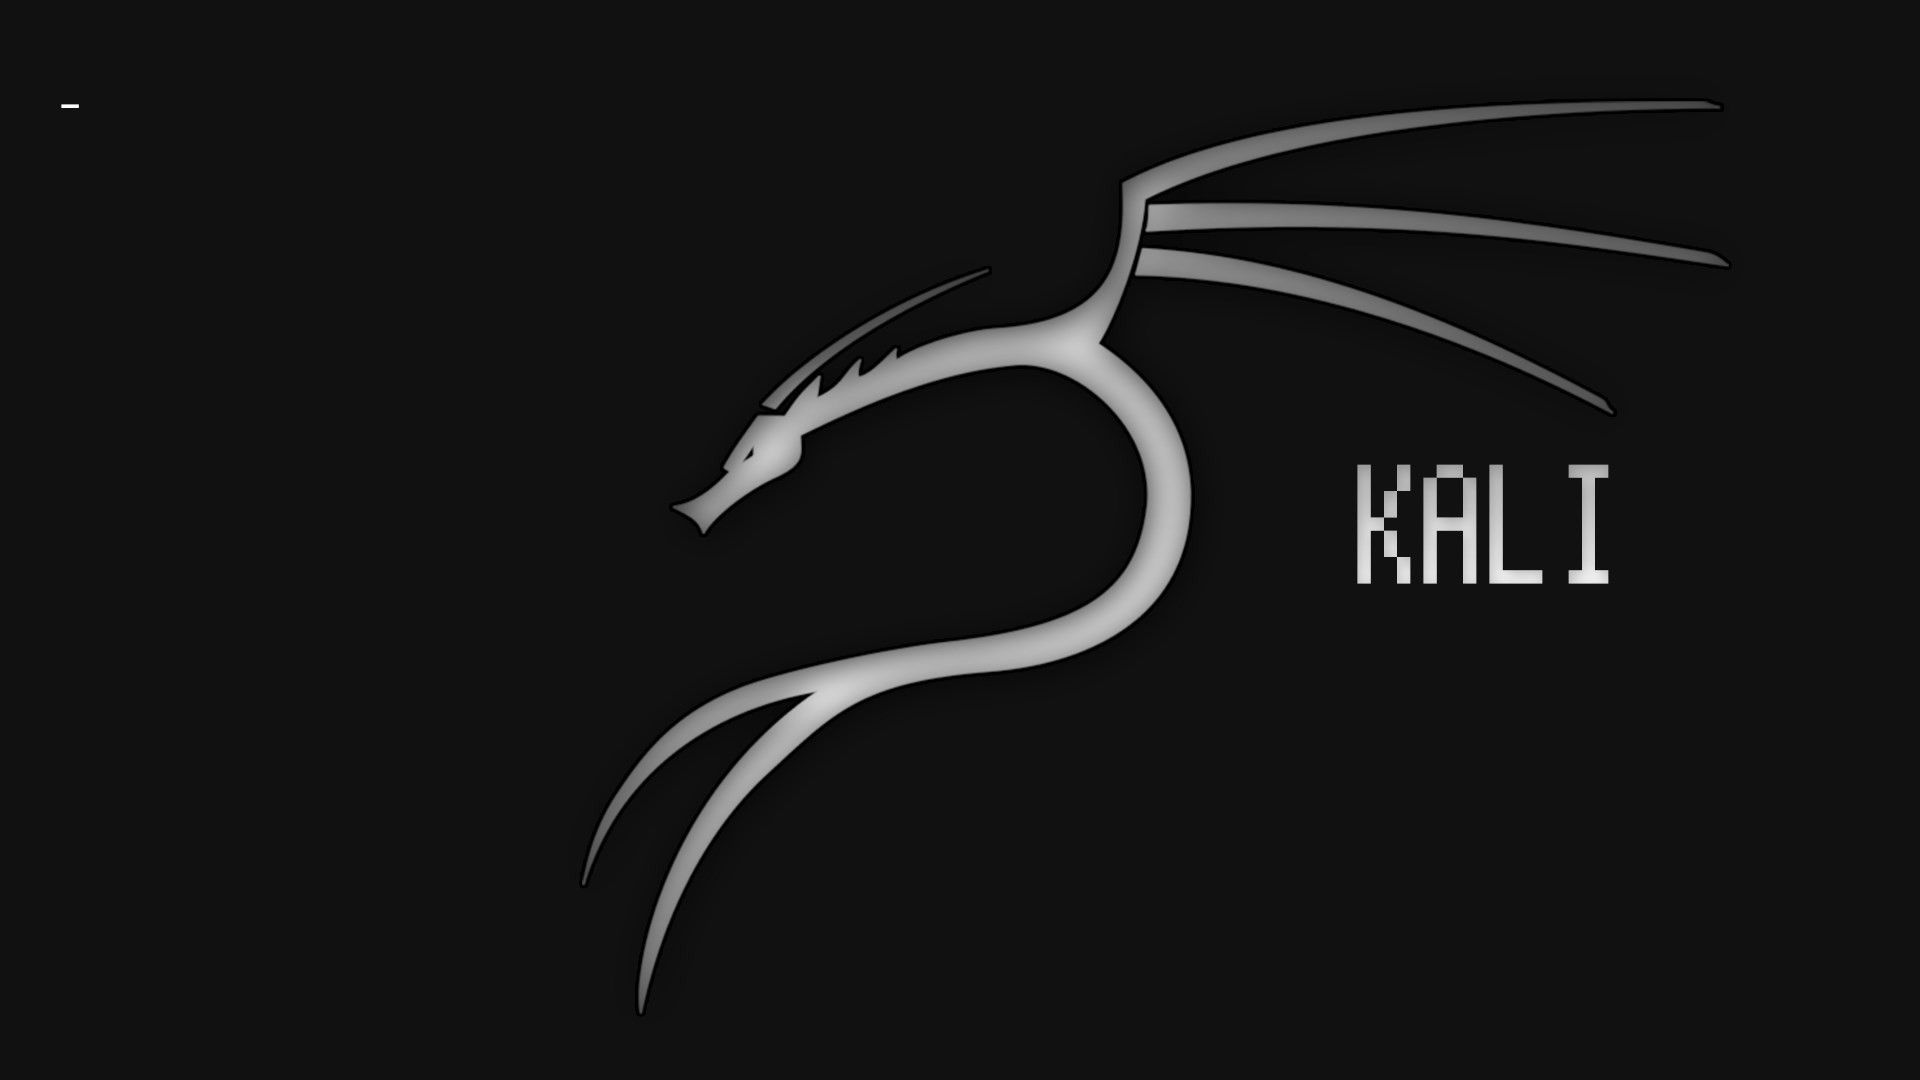 Kali Linux Hd Wallpaper Background Image 1920x1080 Id